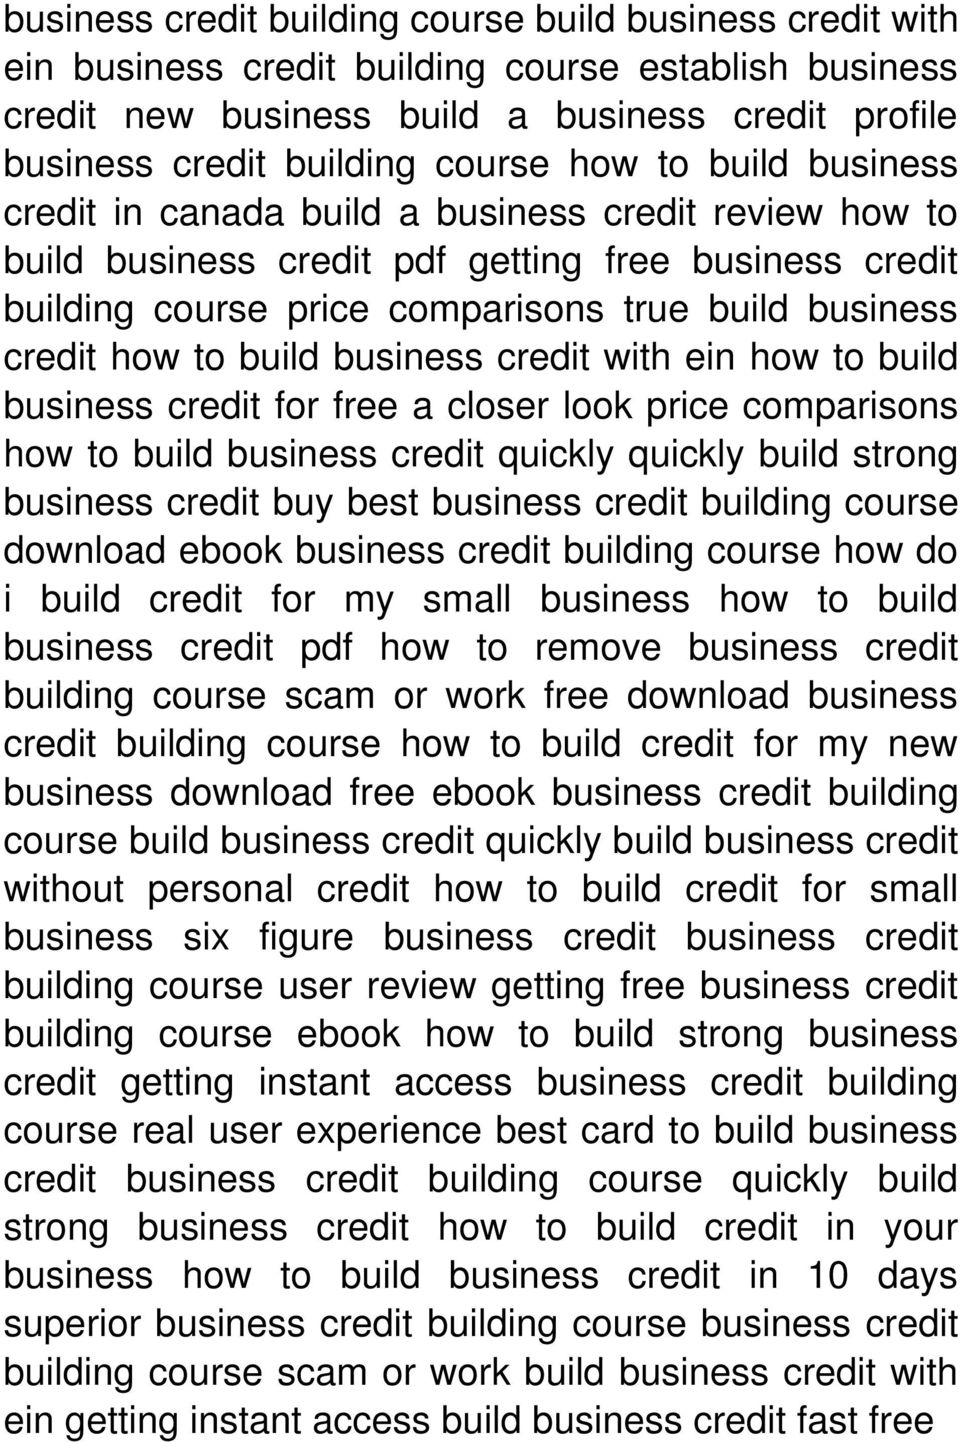 build business credit with ein how to build business credit for free a closer look price comparisons how to build business credit quickly quickly build strong business credit buy best business credit